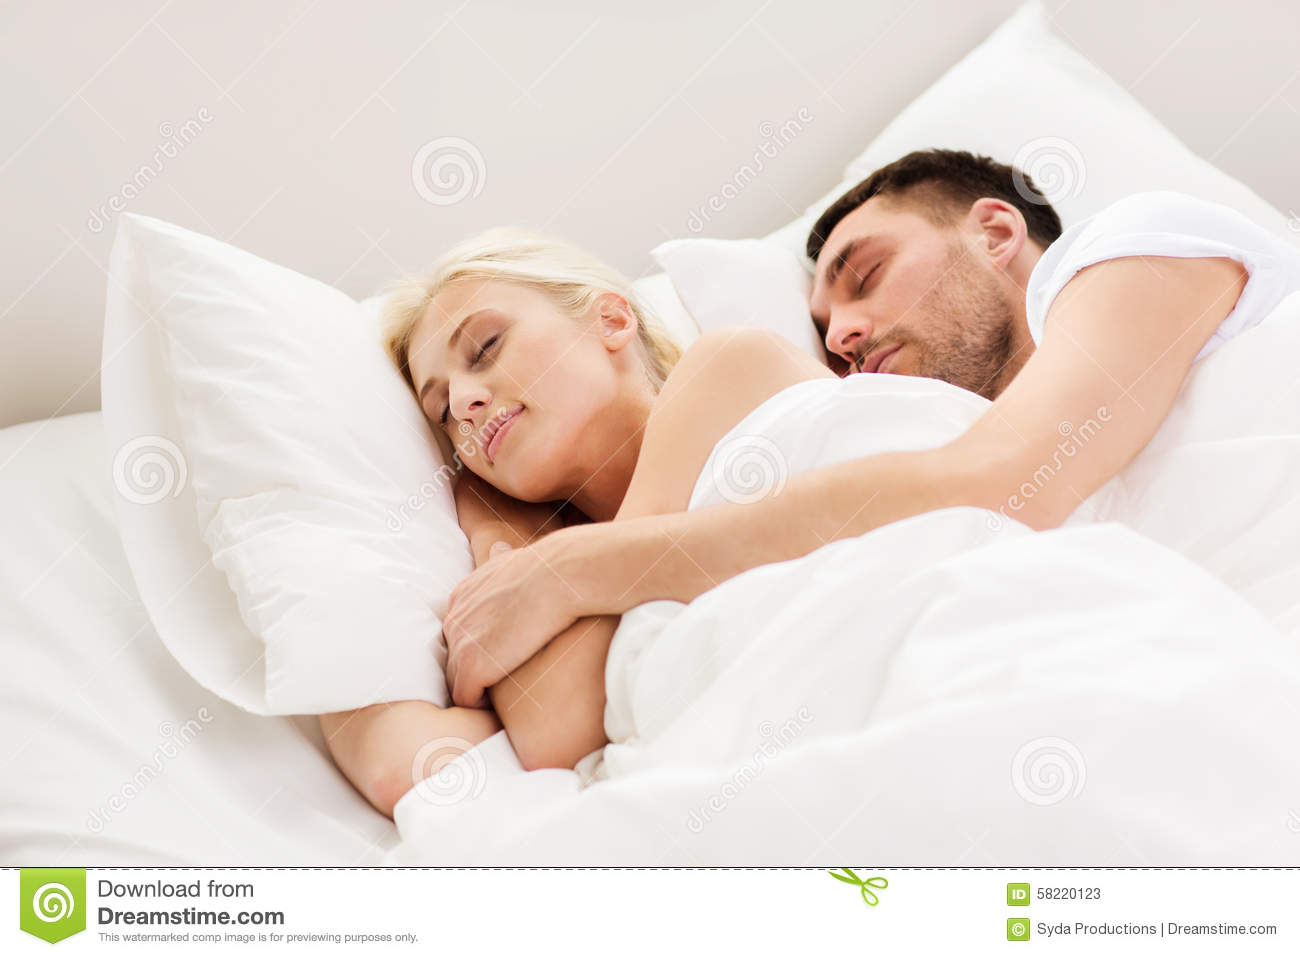 Masturbation couple bed opinion you